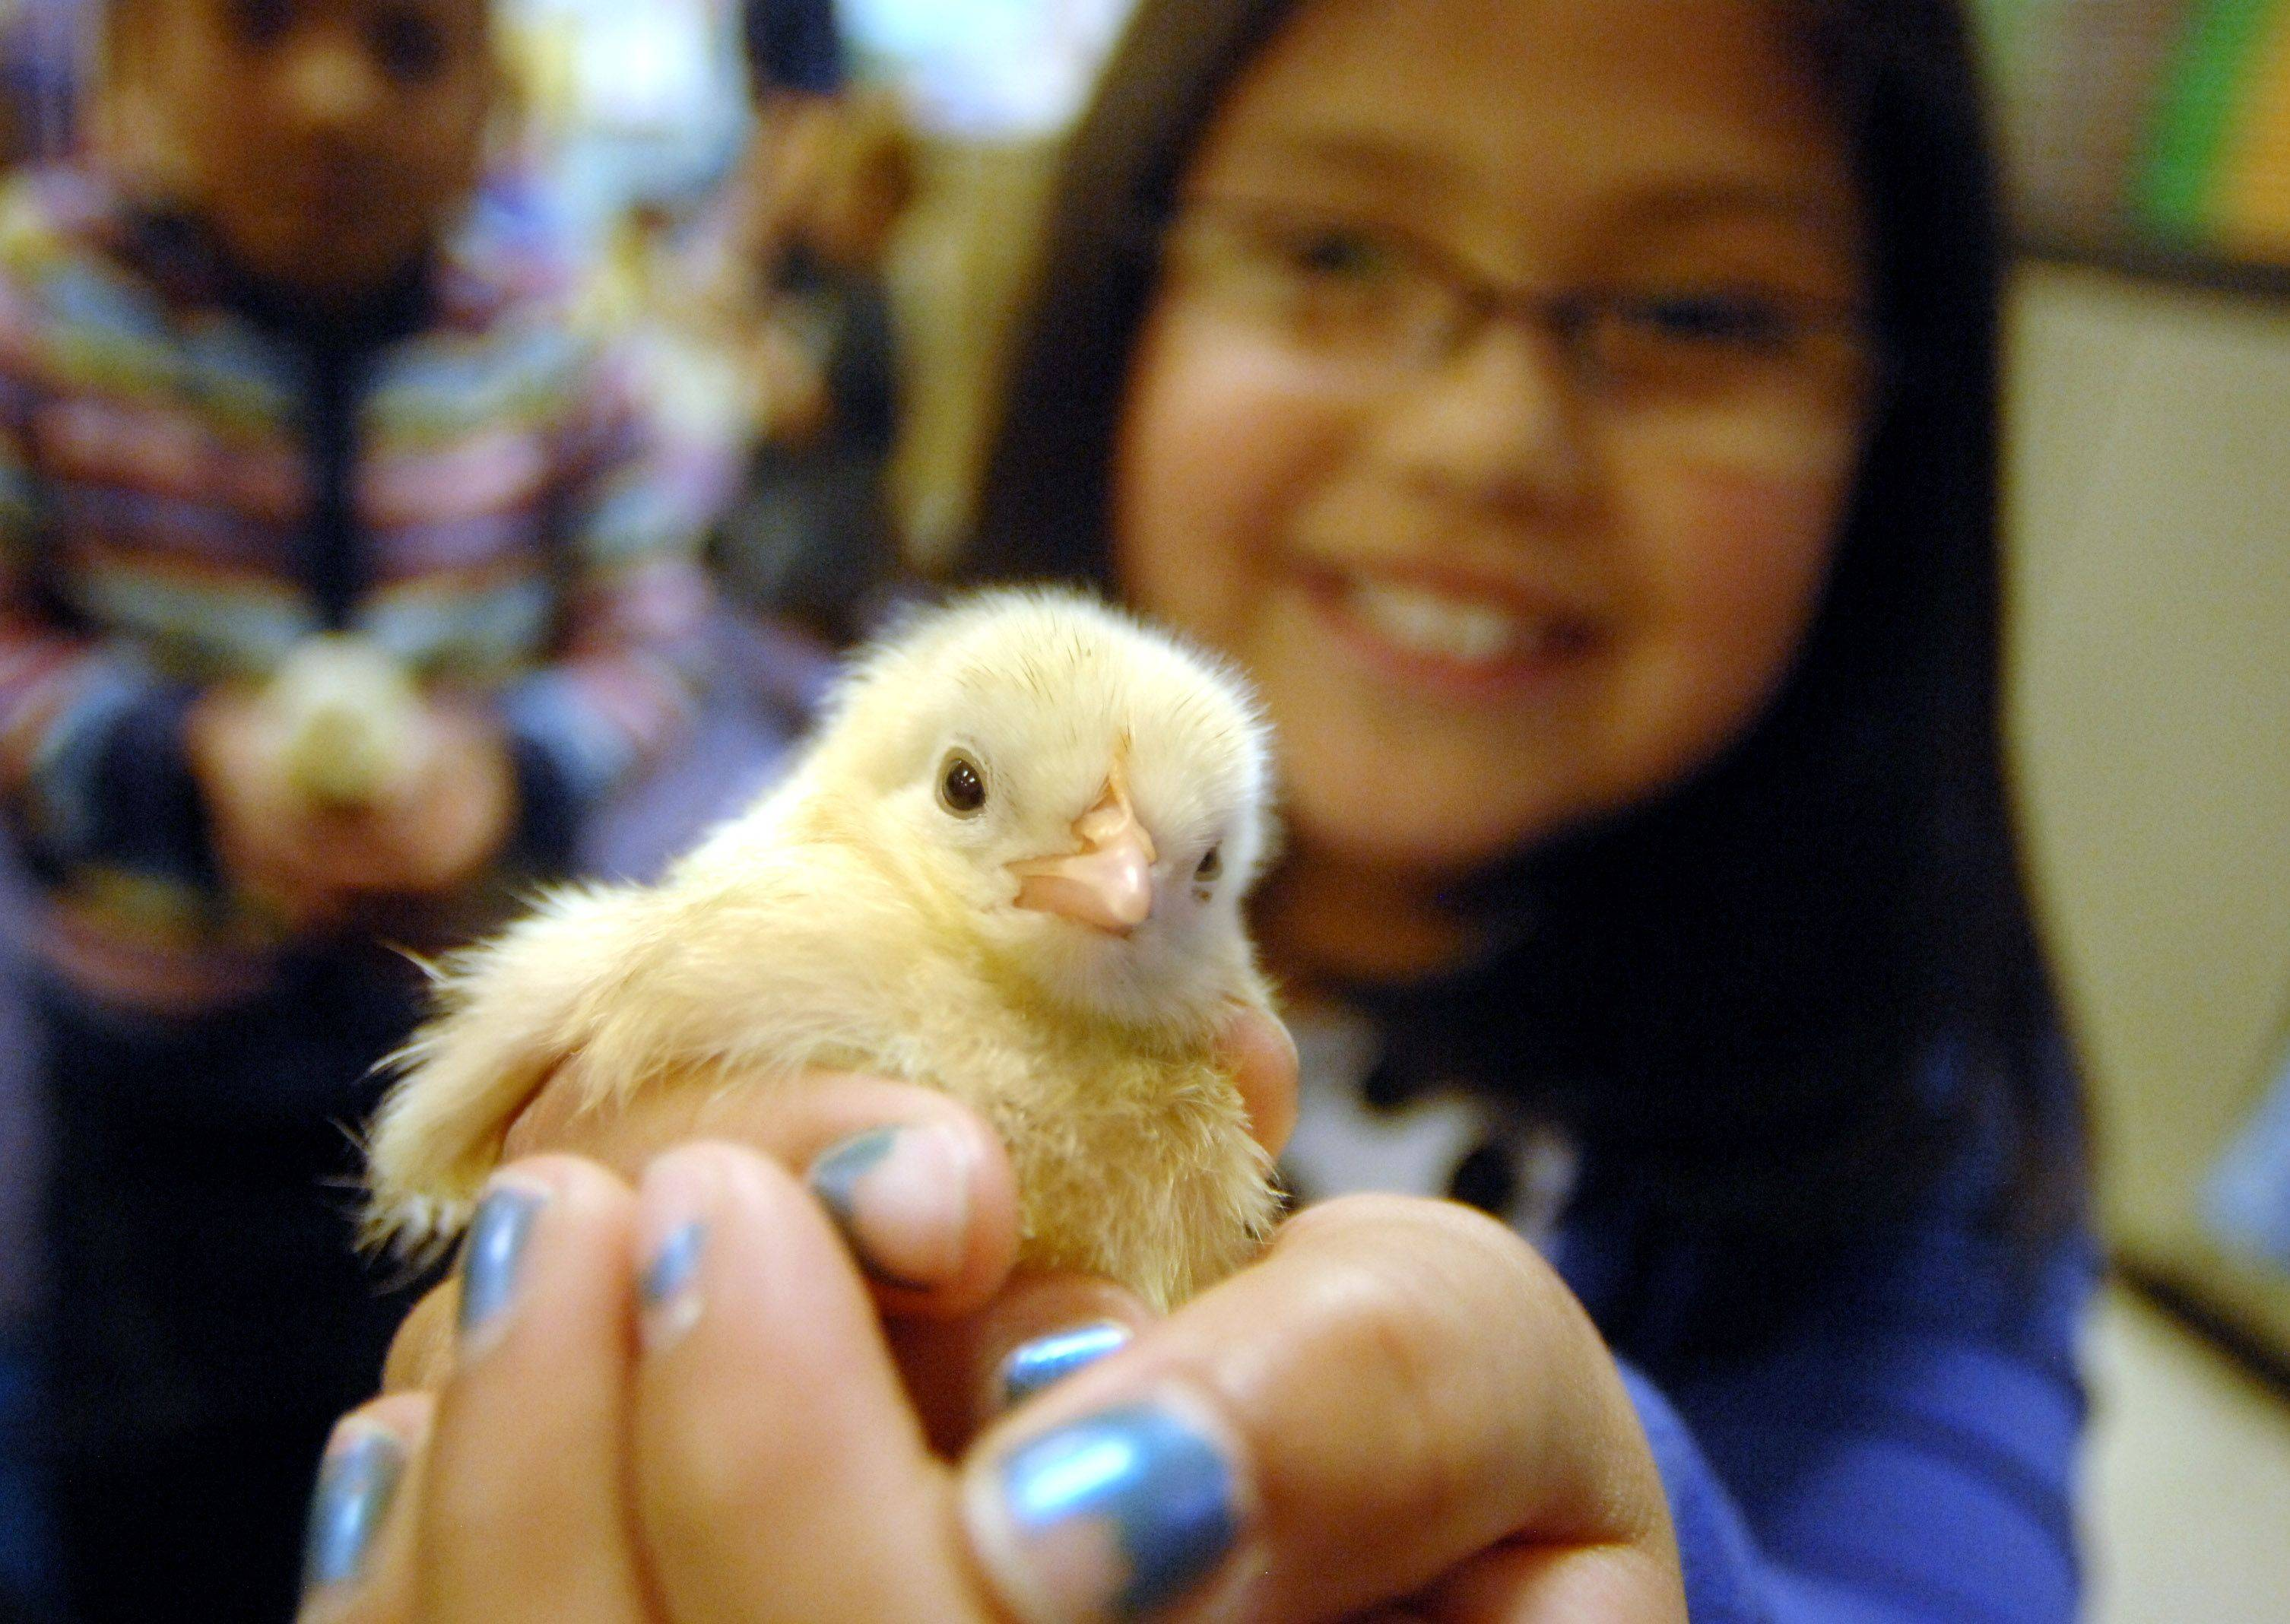 First grade students in Emily Campbell's class got to hold baby chicks Friday at Fairhaven School in Mundelein. Bianca Rico, 7, and her fellow classmates have been learning about the hatching process and watched the chicks hatch this week.